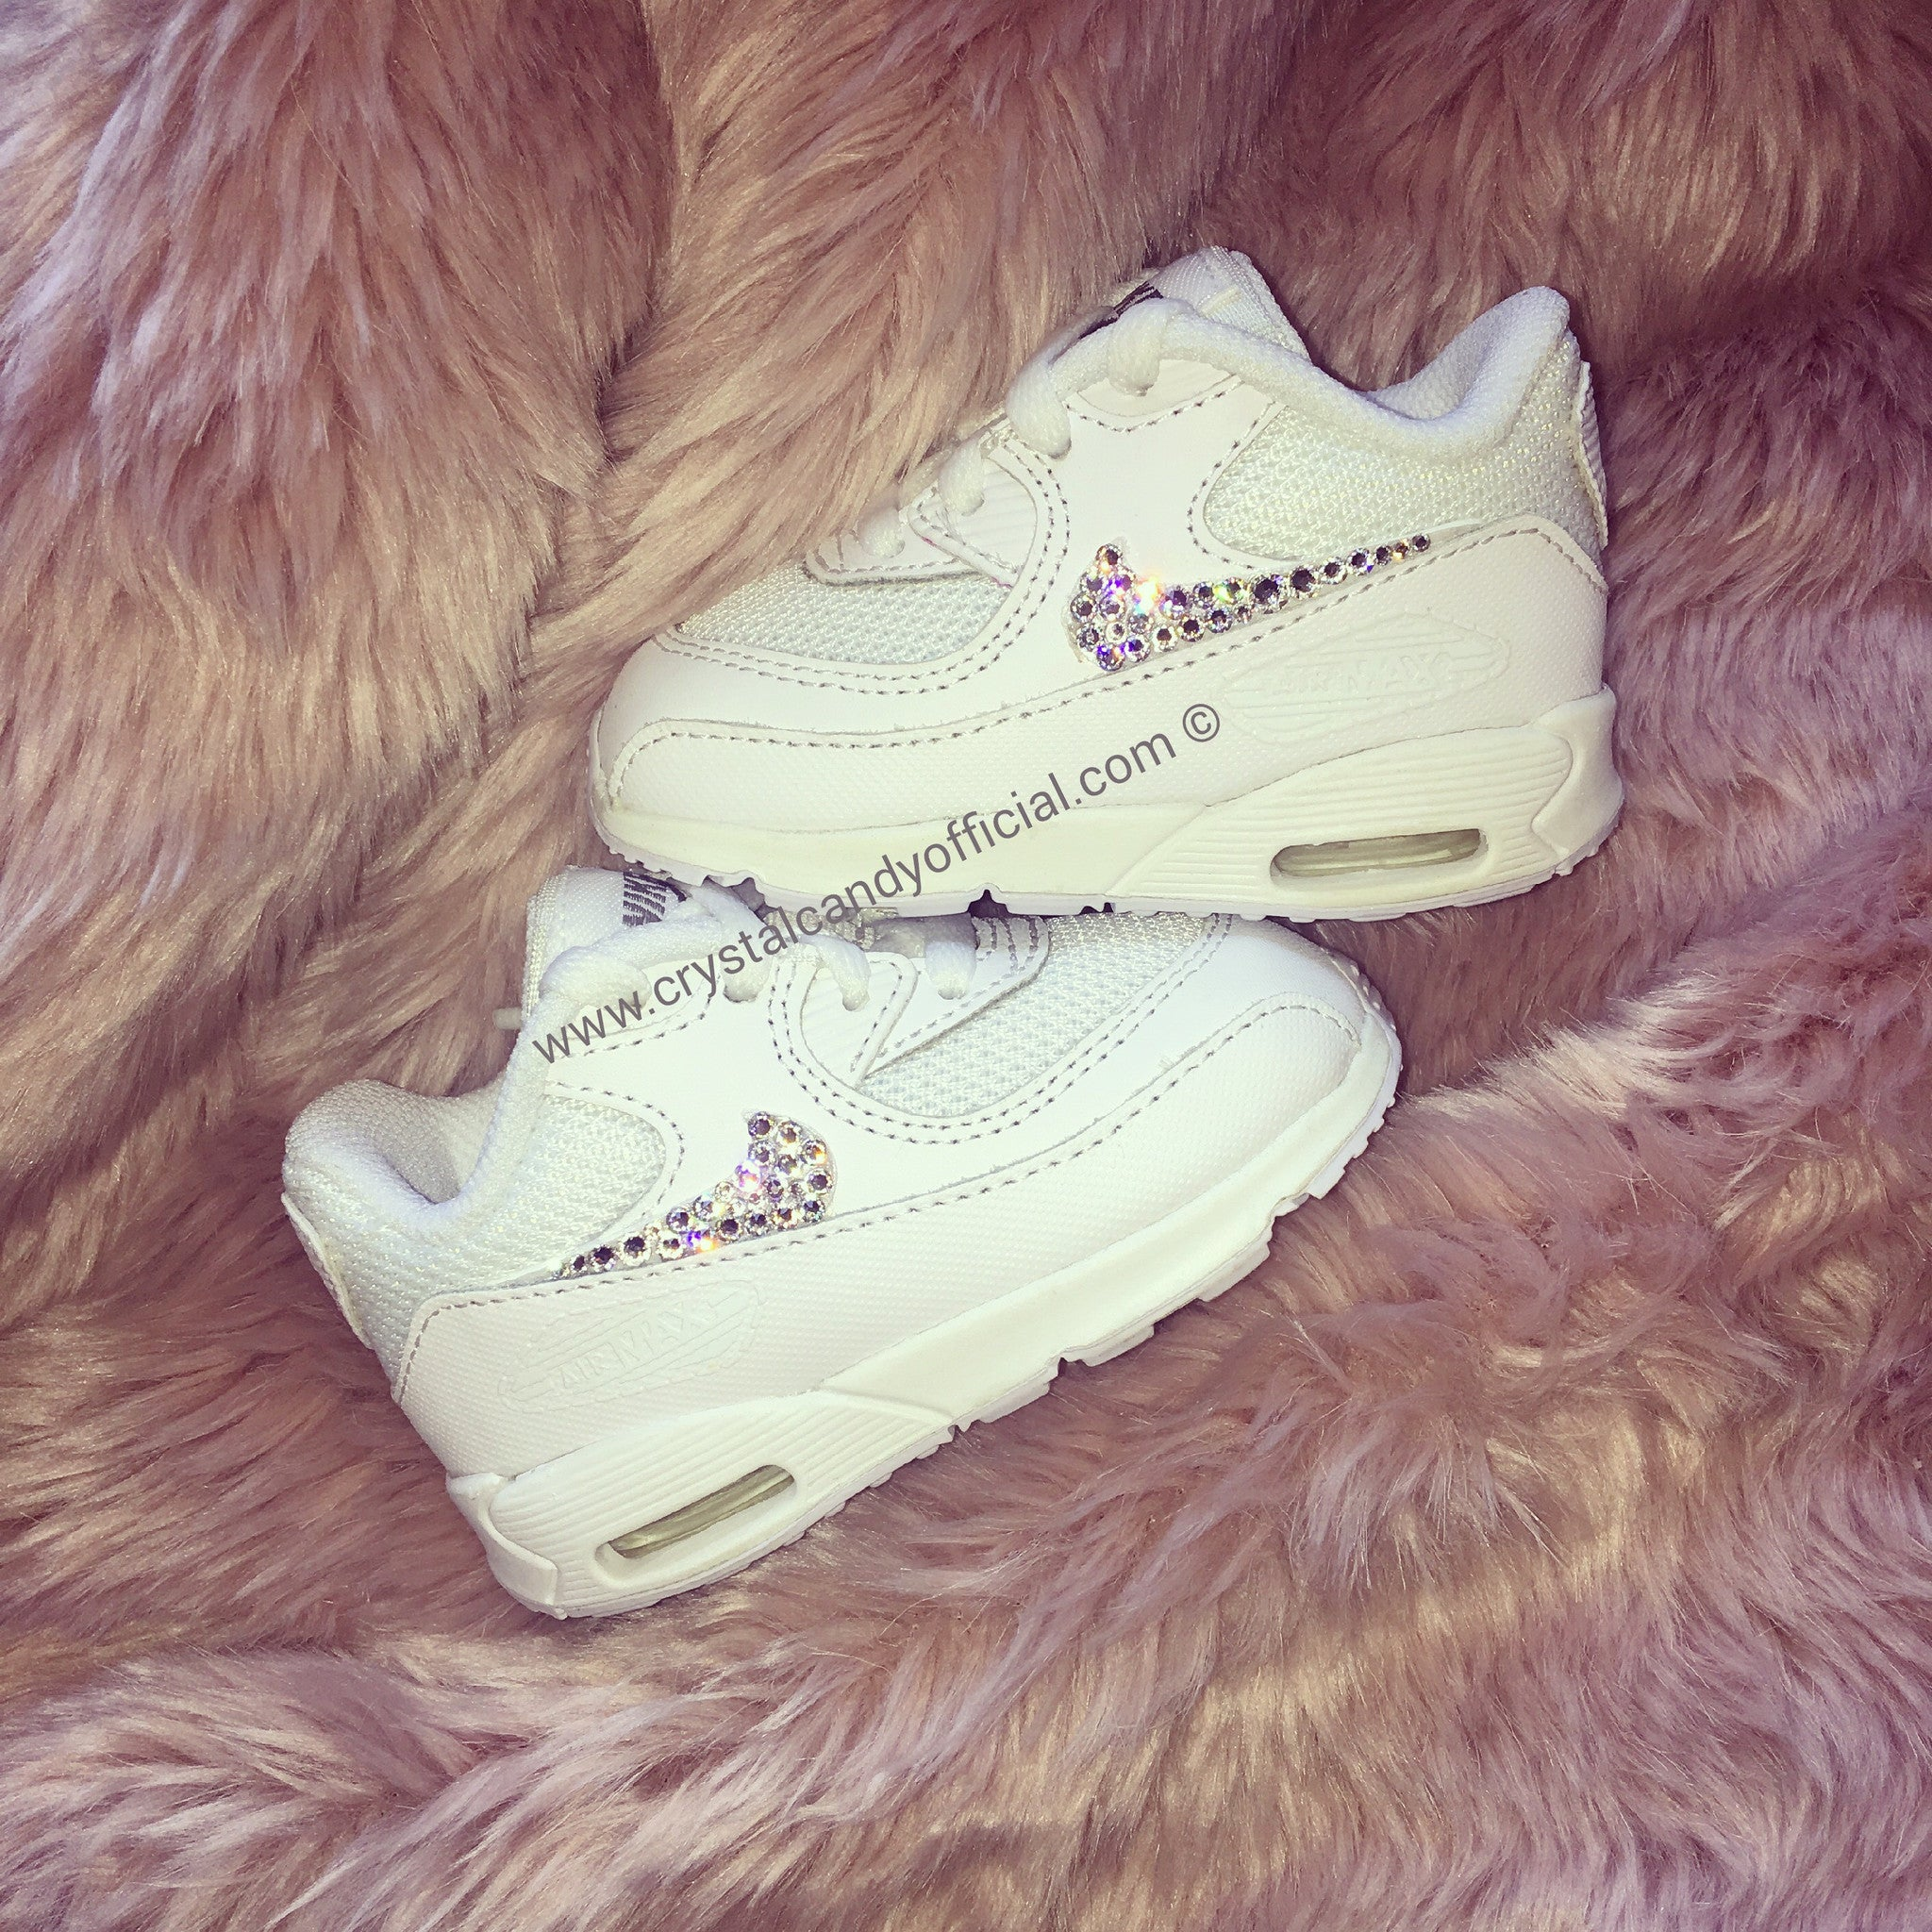 los angeles 08b8d e3fe0 Kids Baby Crystal Nike Air Max 90 s (Ticks Only) - Crystal Candy Limited